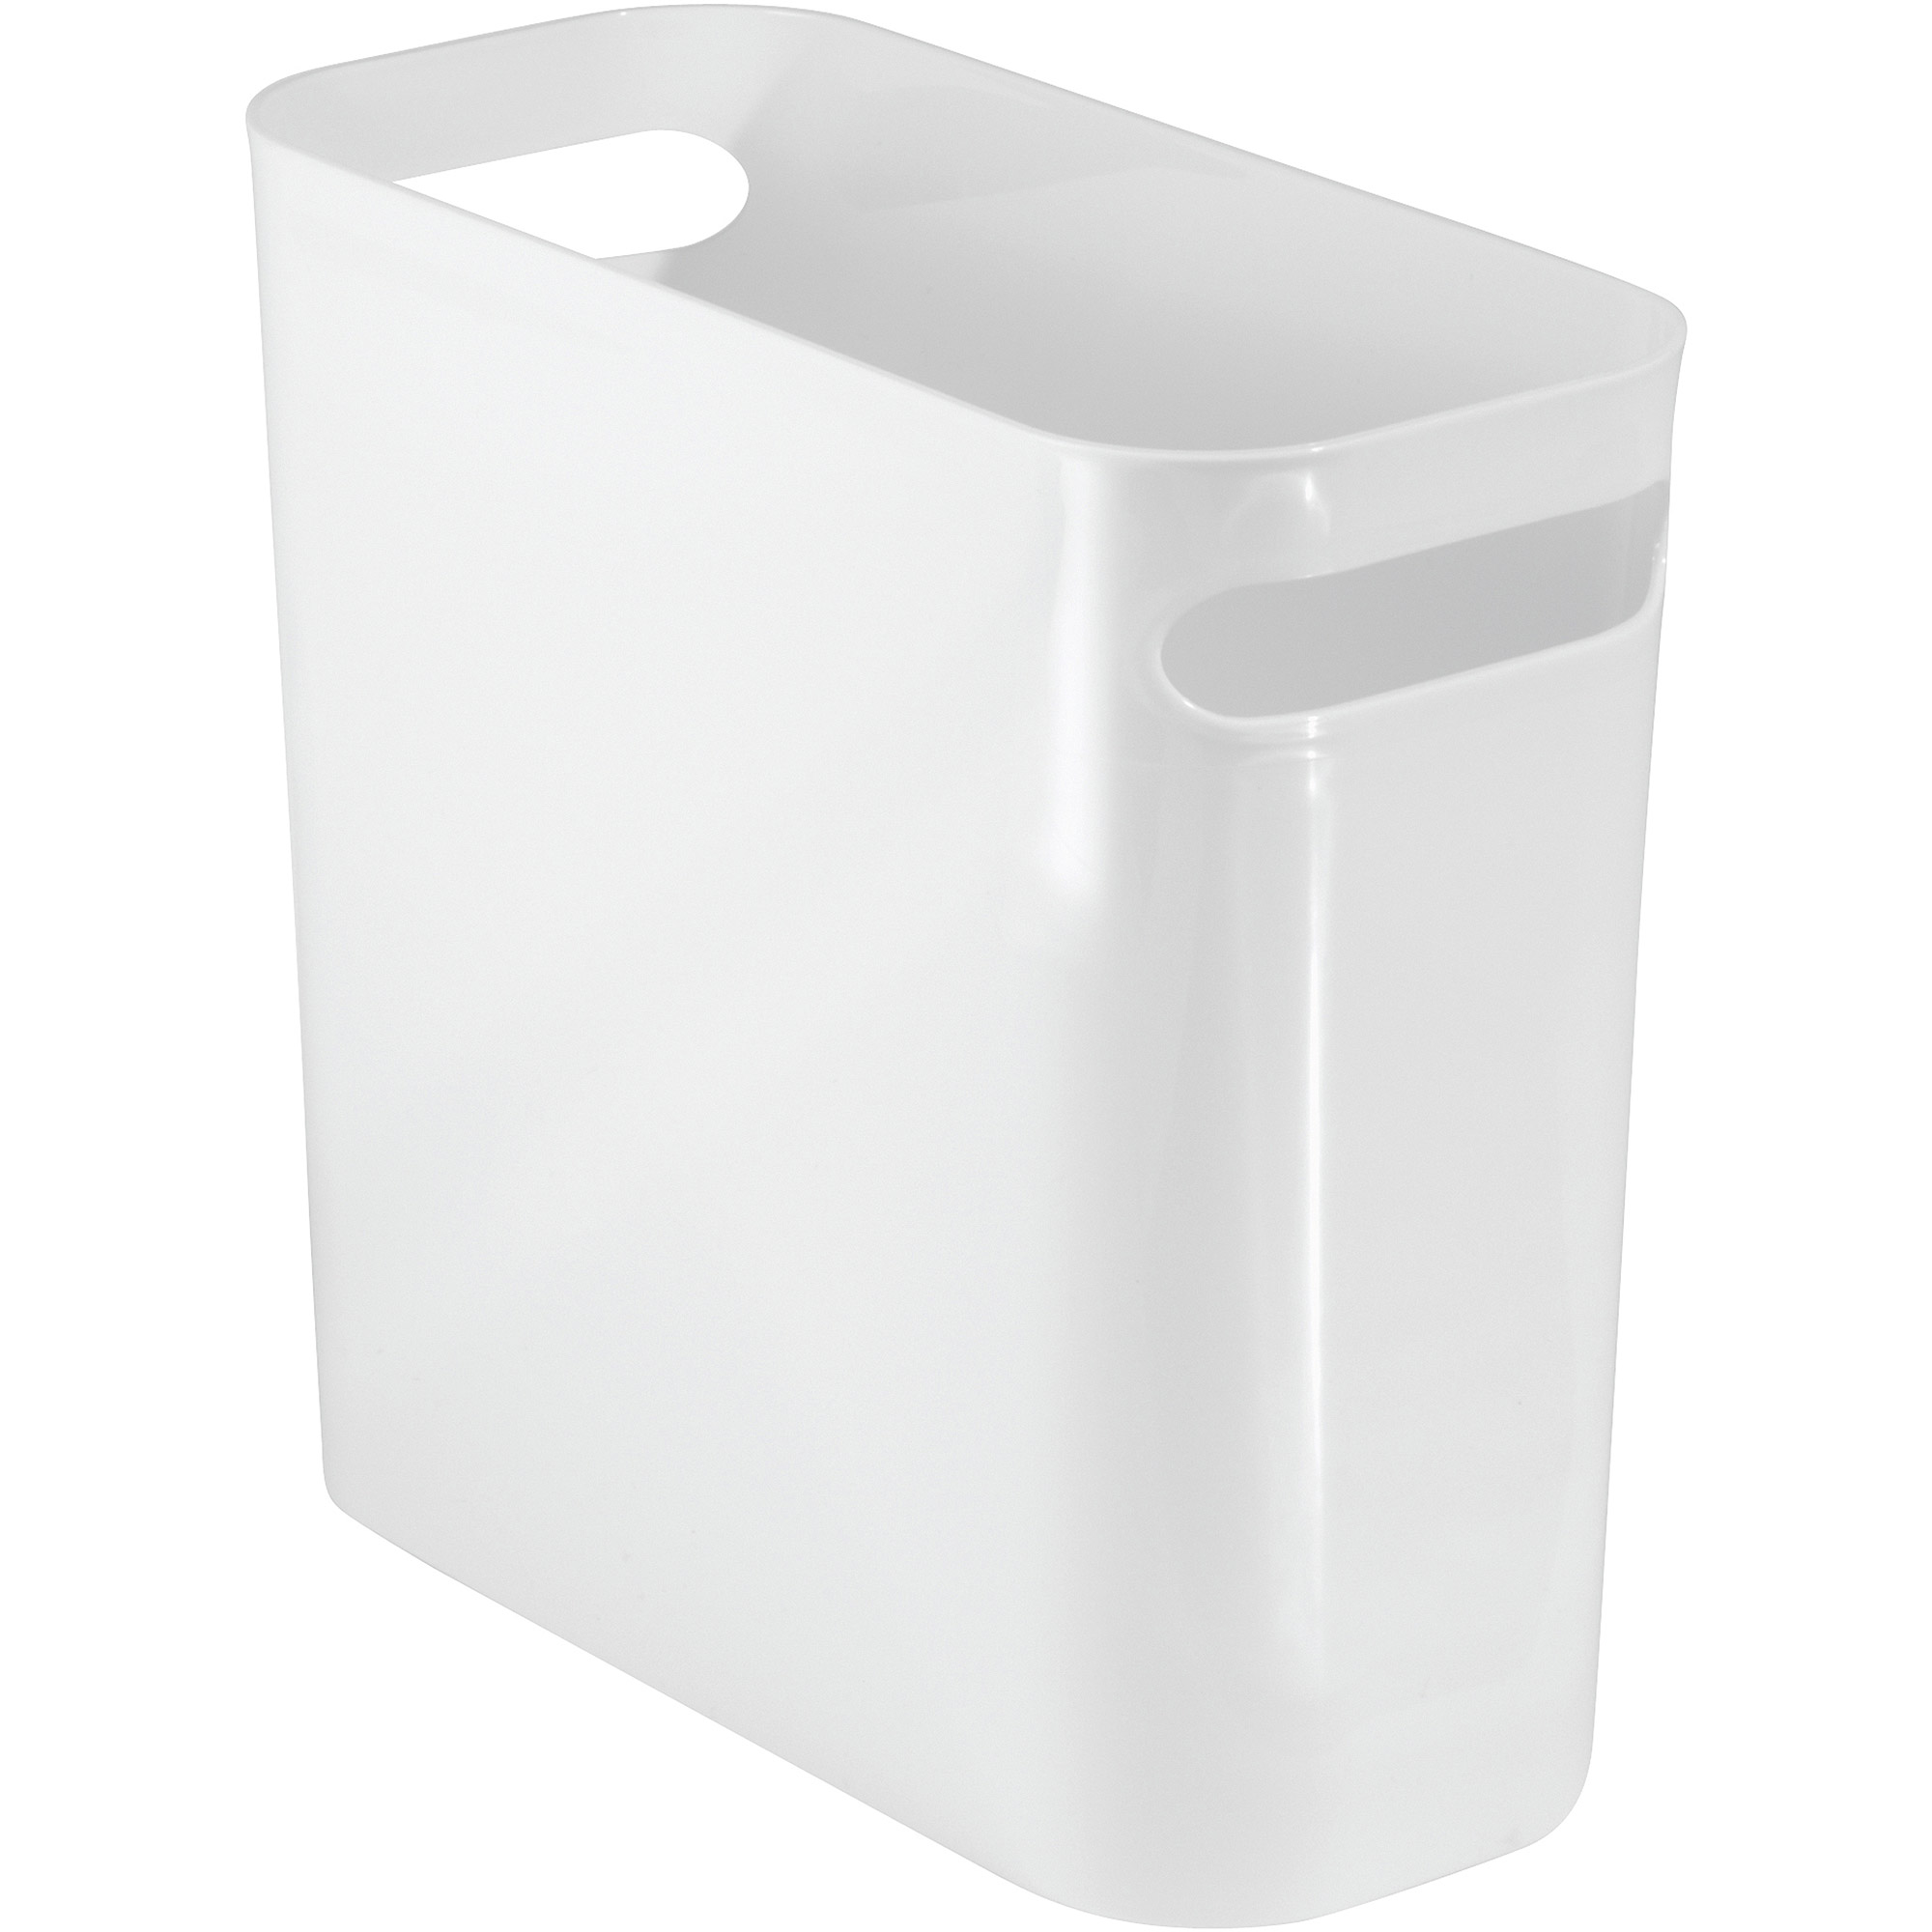 "White Bathroom Garbage Cans interdesign una wastebasket, 10"" - walmart"